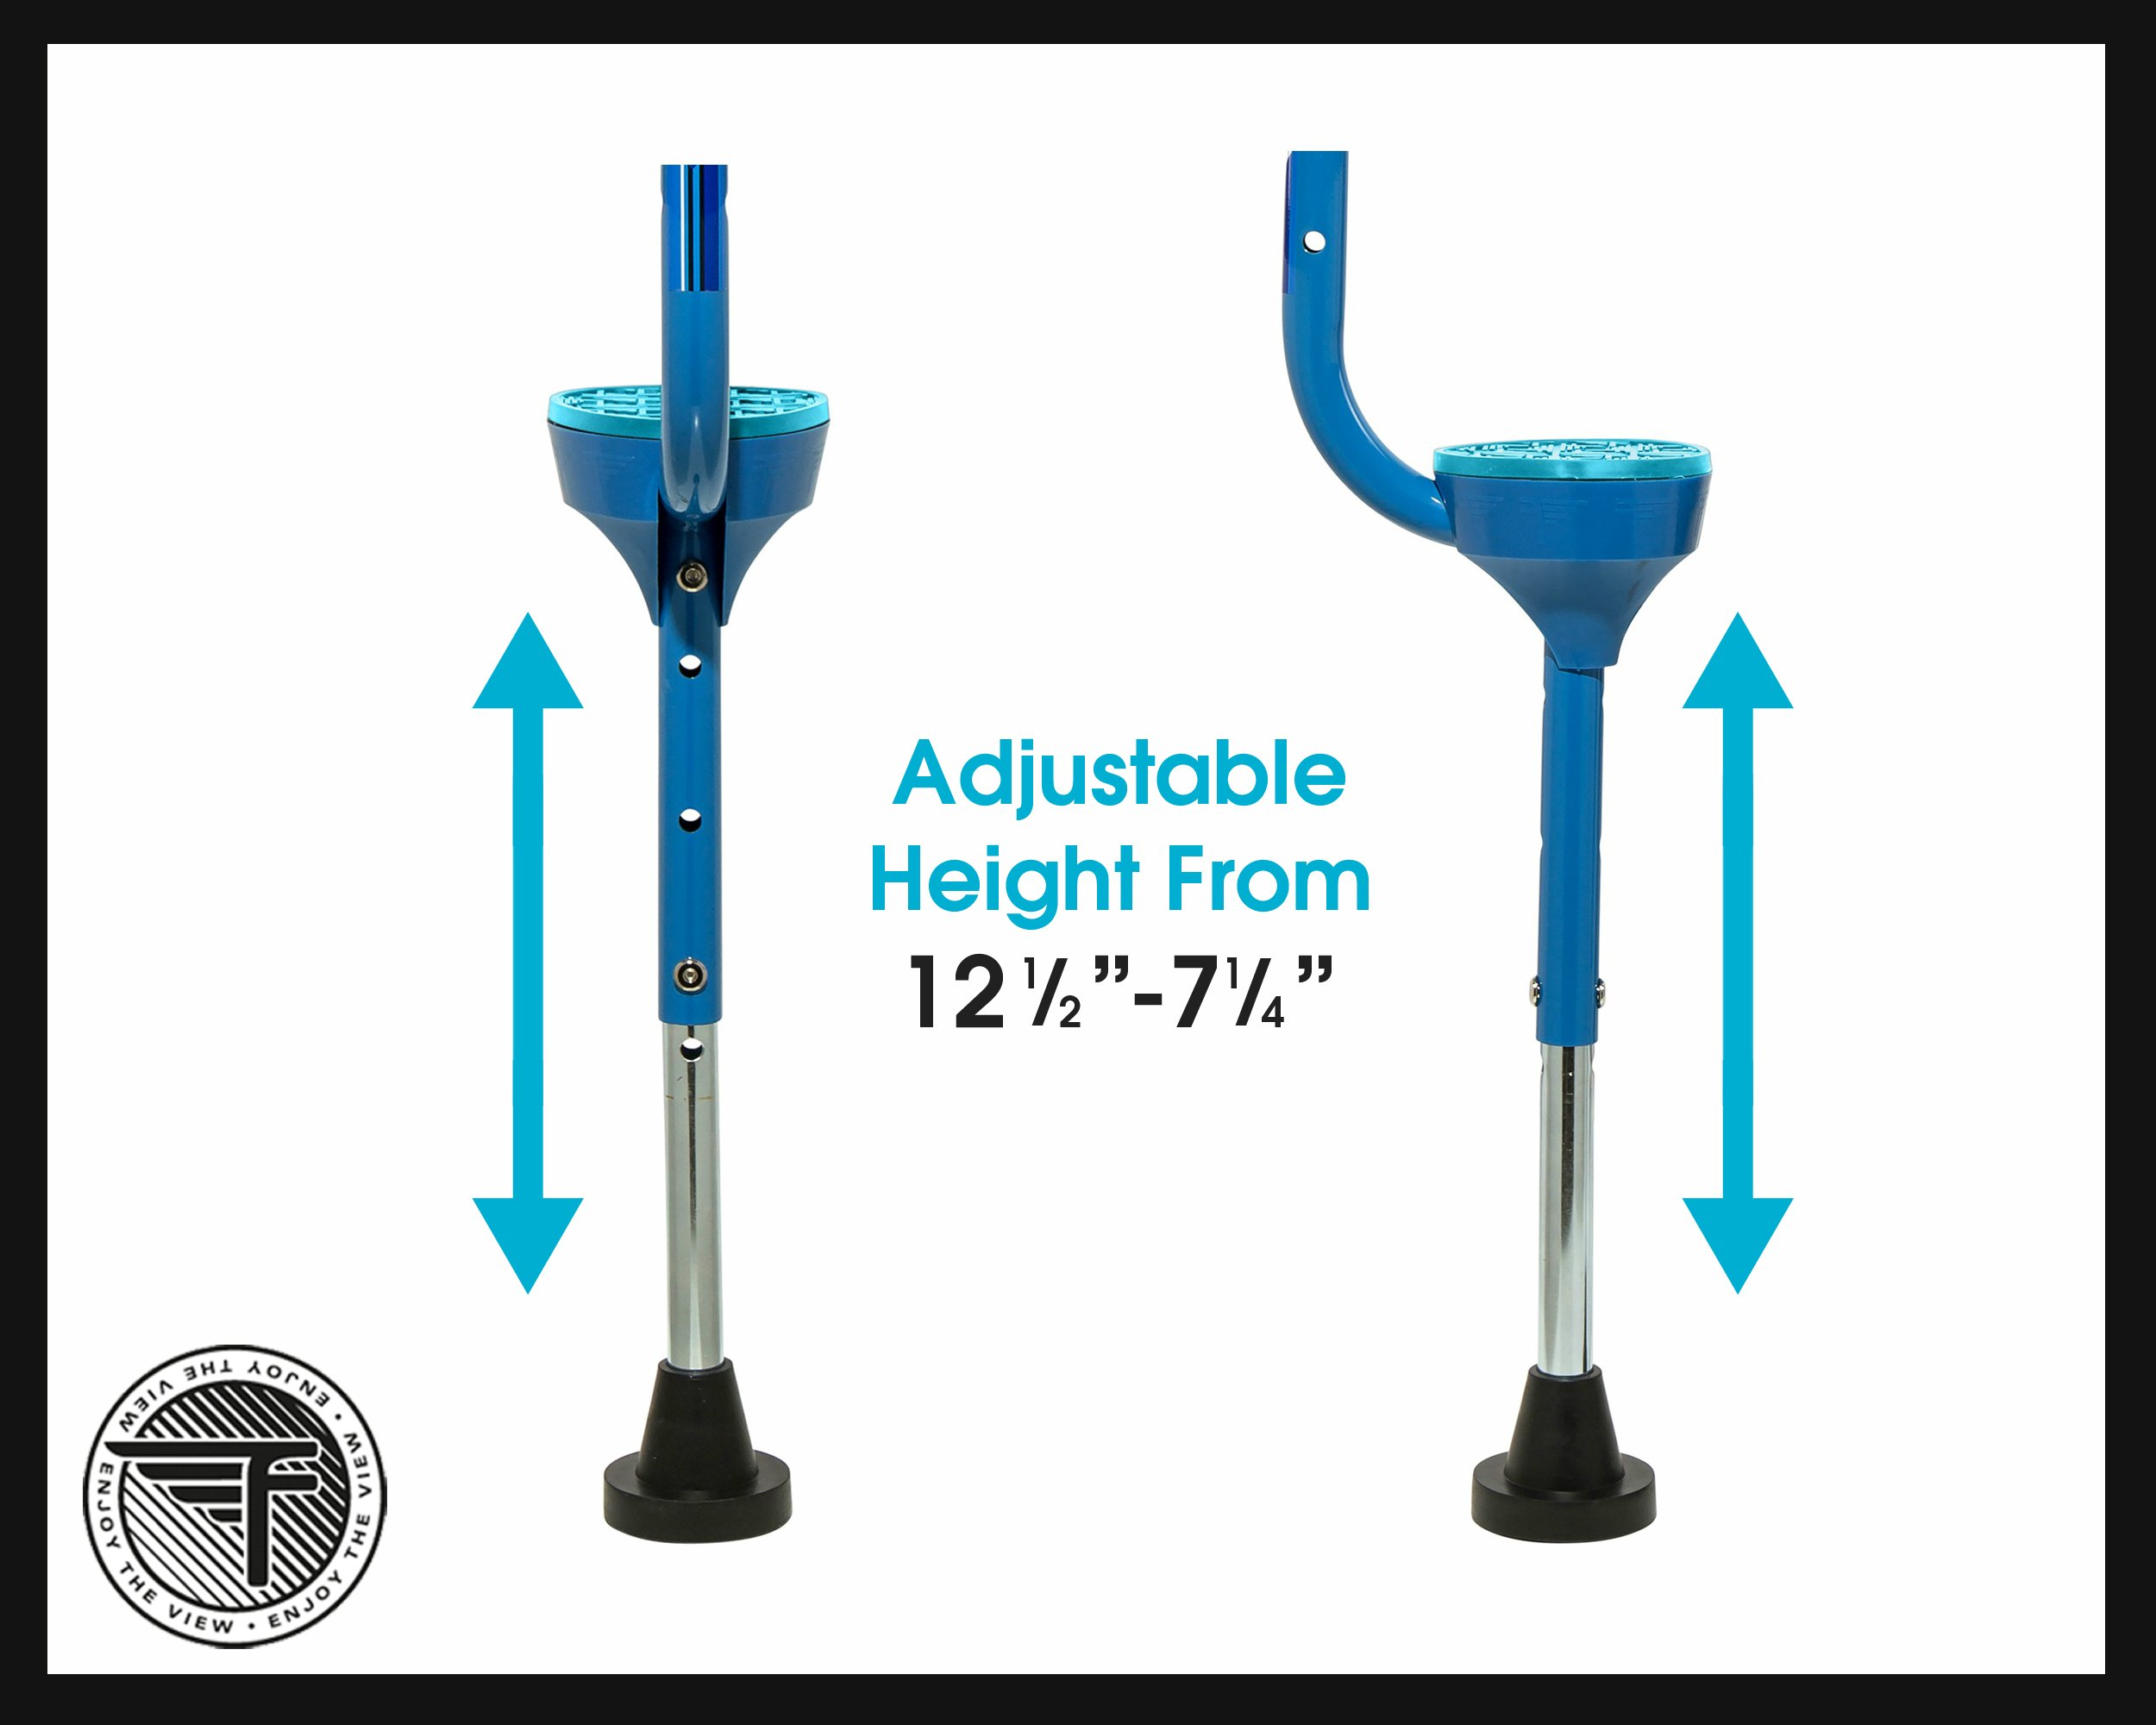 Flybar Maverick Walking Stilts for Kids Ages 5 +, Weights Up to 190 Lbs - Adjustable Foam Handles with Wide Stance Foot Pegs - Fun Outdoor Toys for Girls & Boys by Flybar (Image #4)